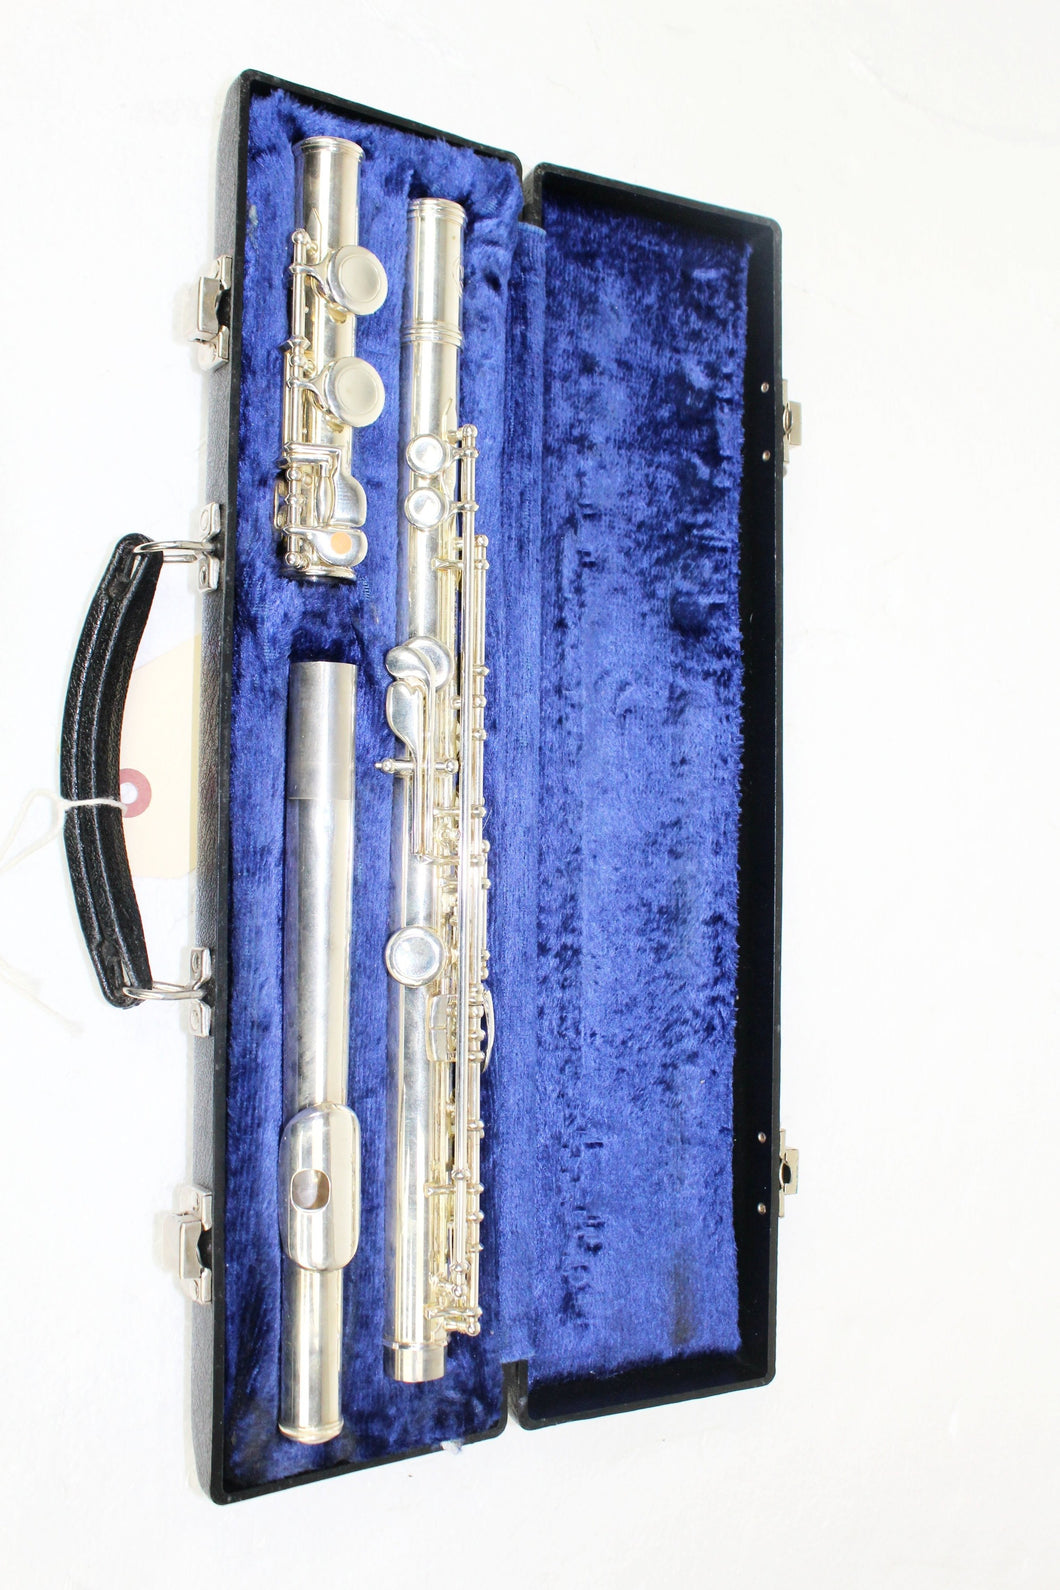 Jupiter Student Flute, this is Pre-Owned Item #342183